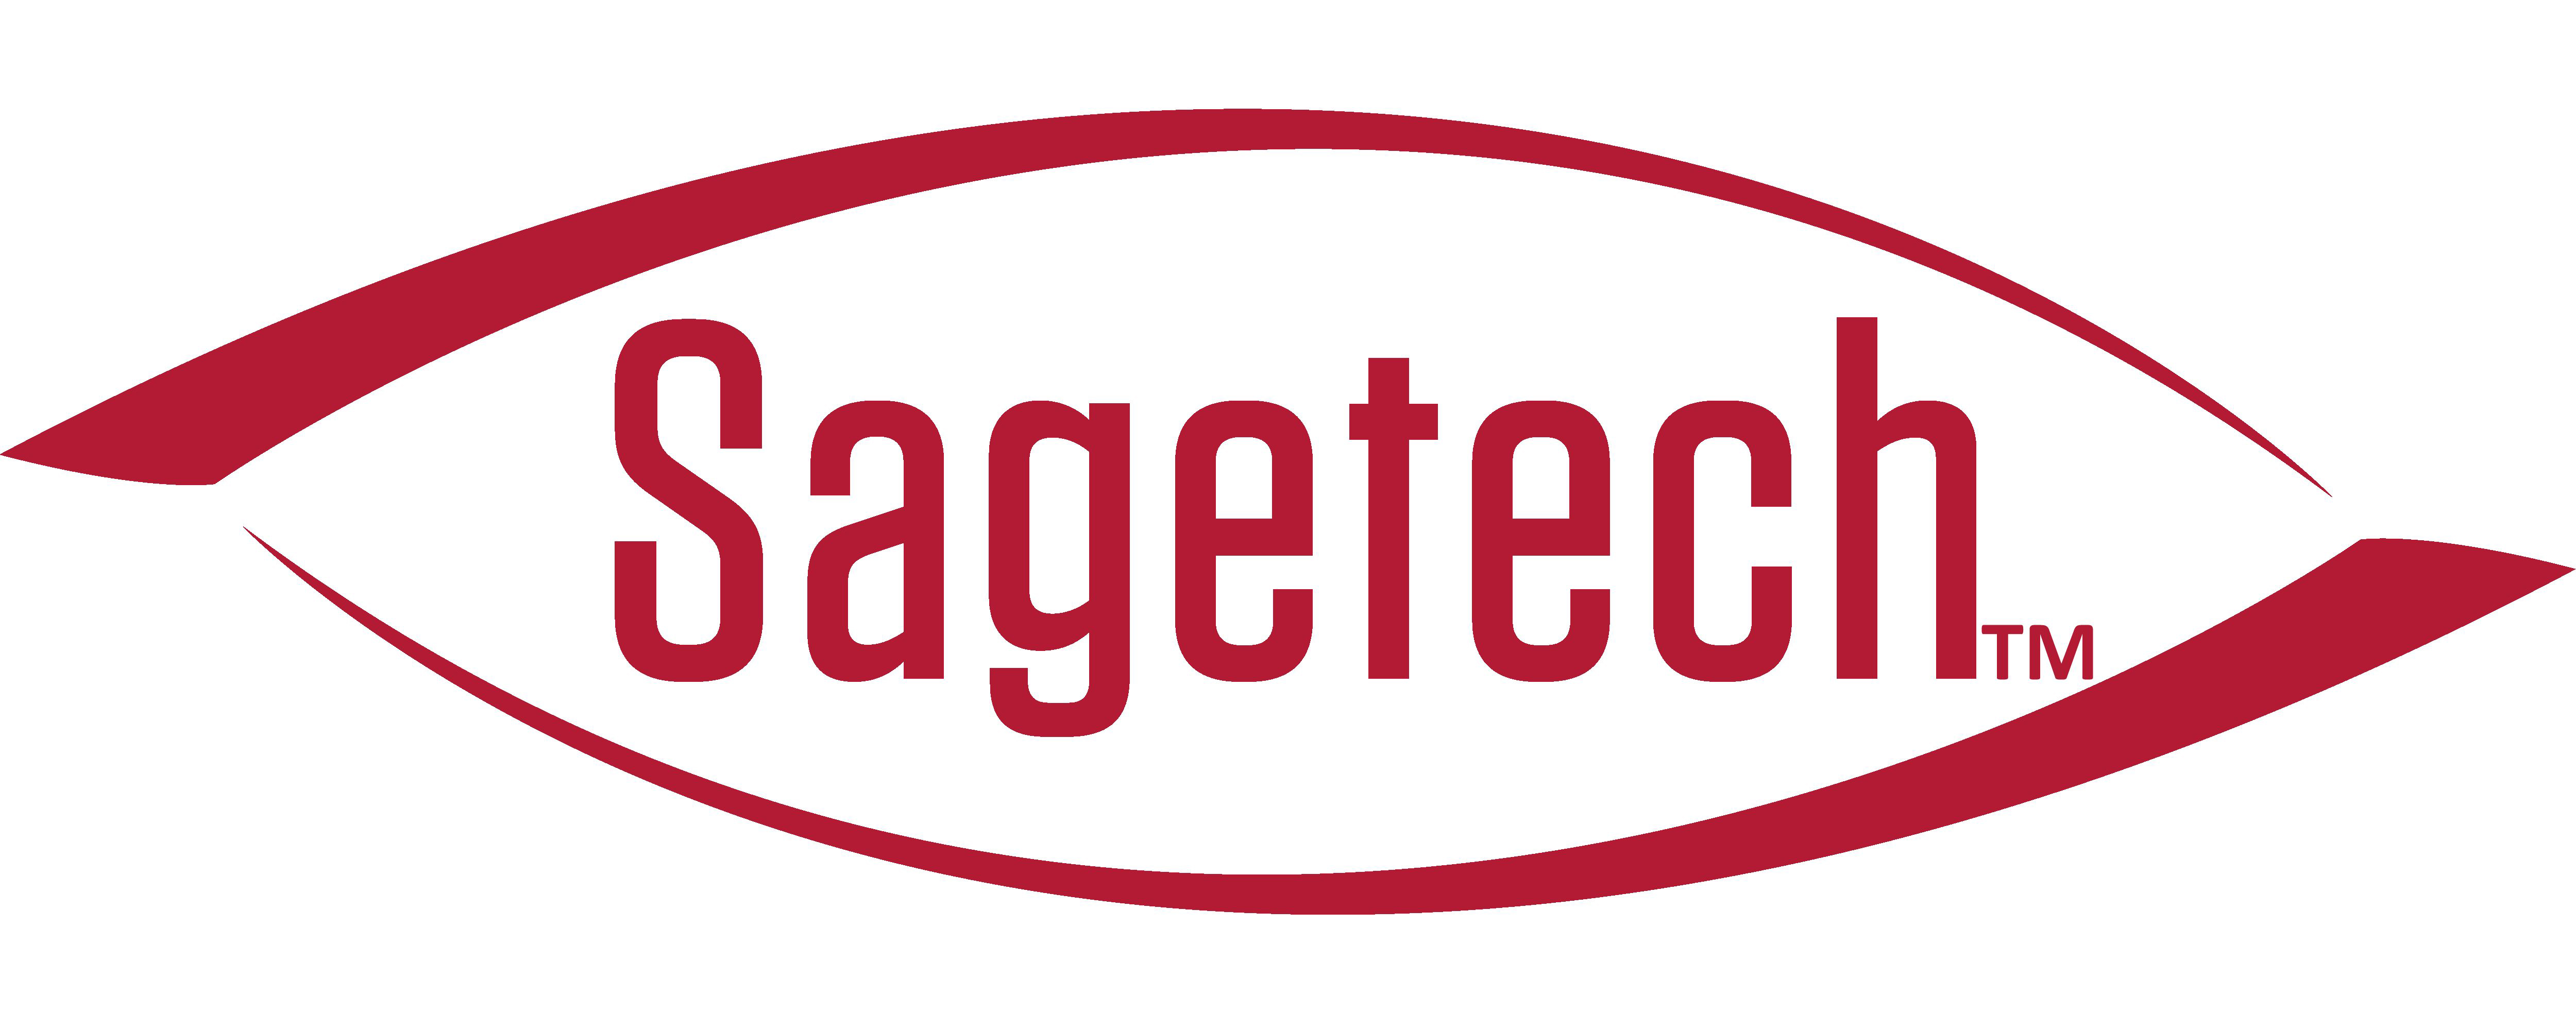 Dod Issues Aims Certification To Sagetech Transponder